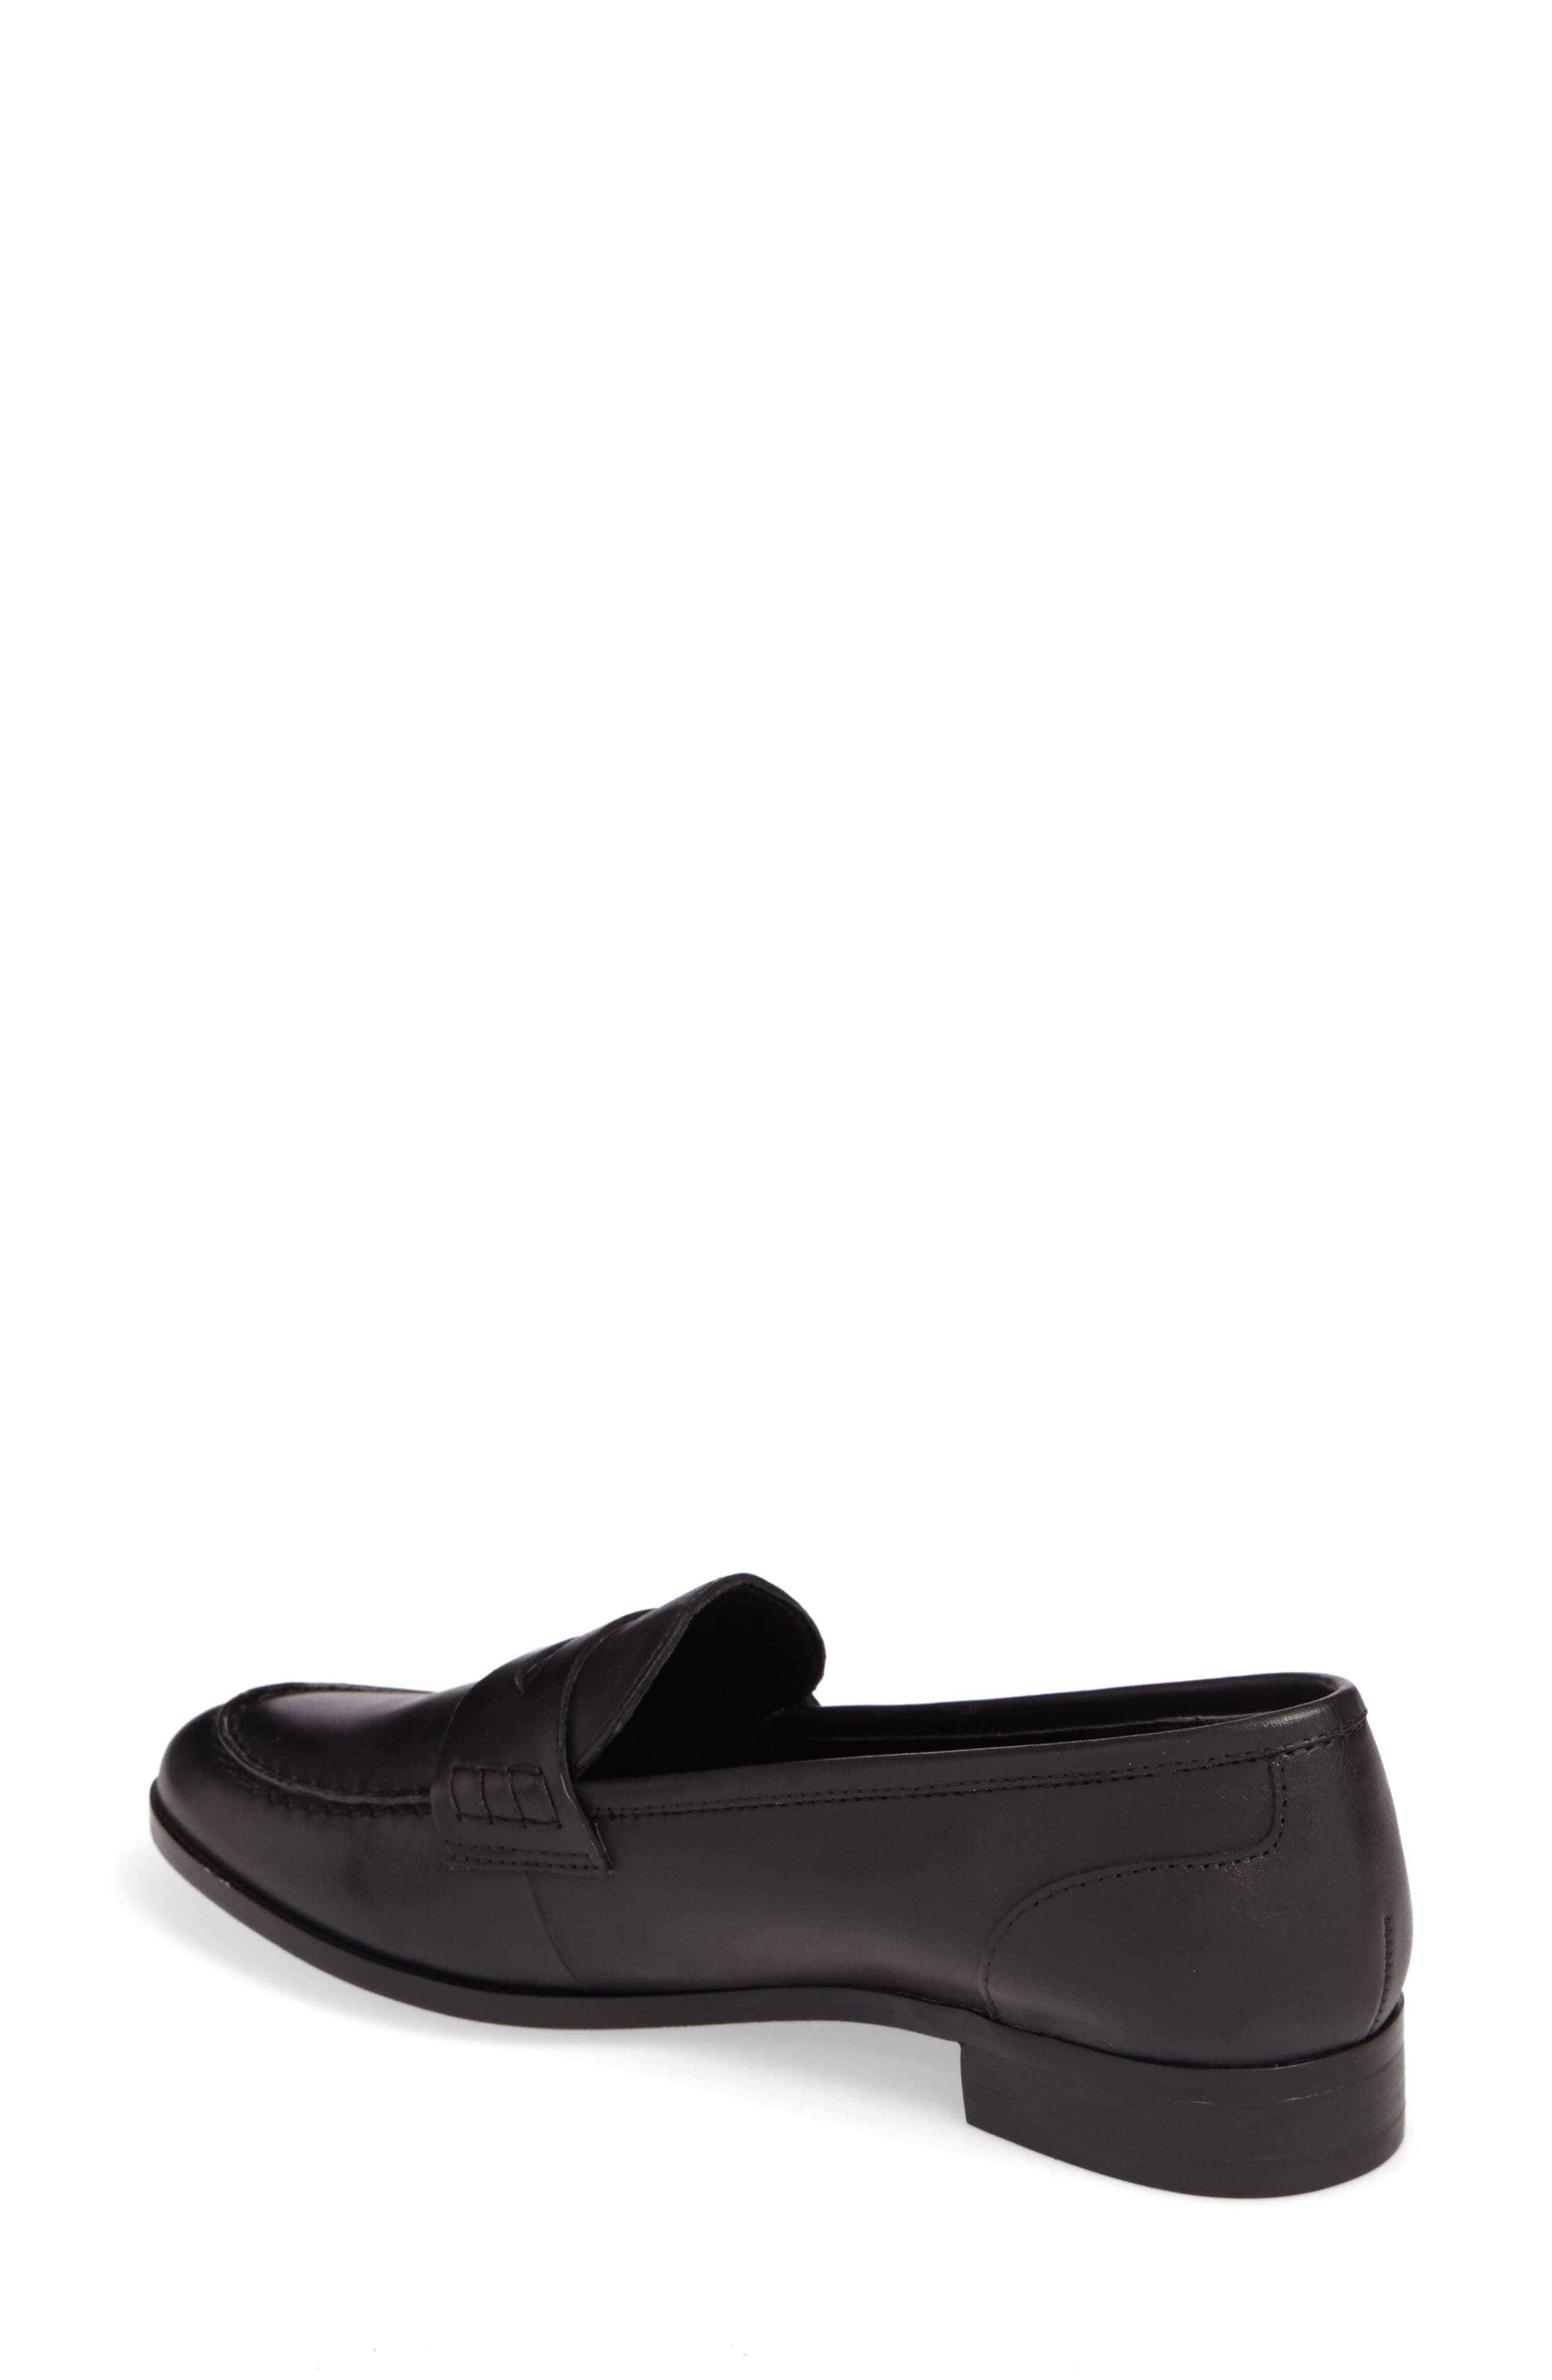 Georgie Penny Loafer,                             Alternate thumbnail 3, color,